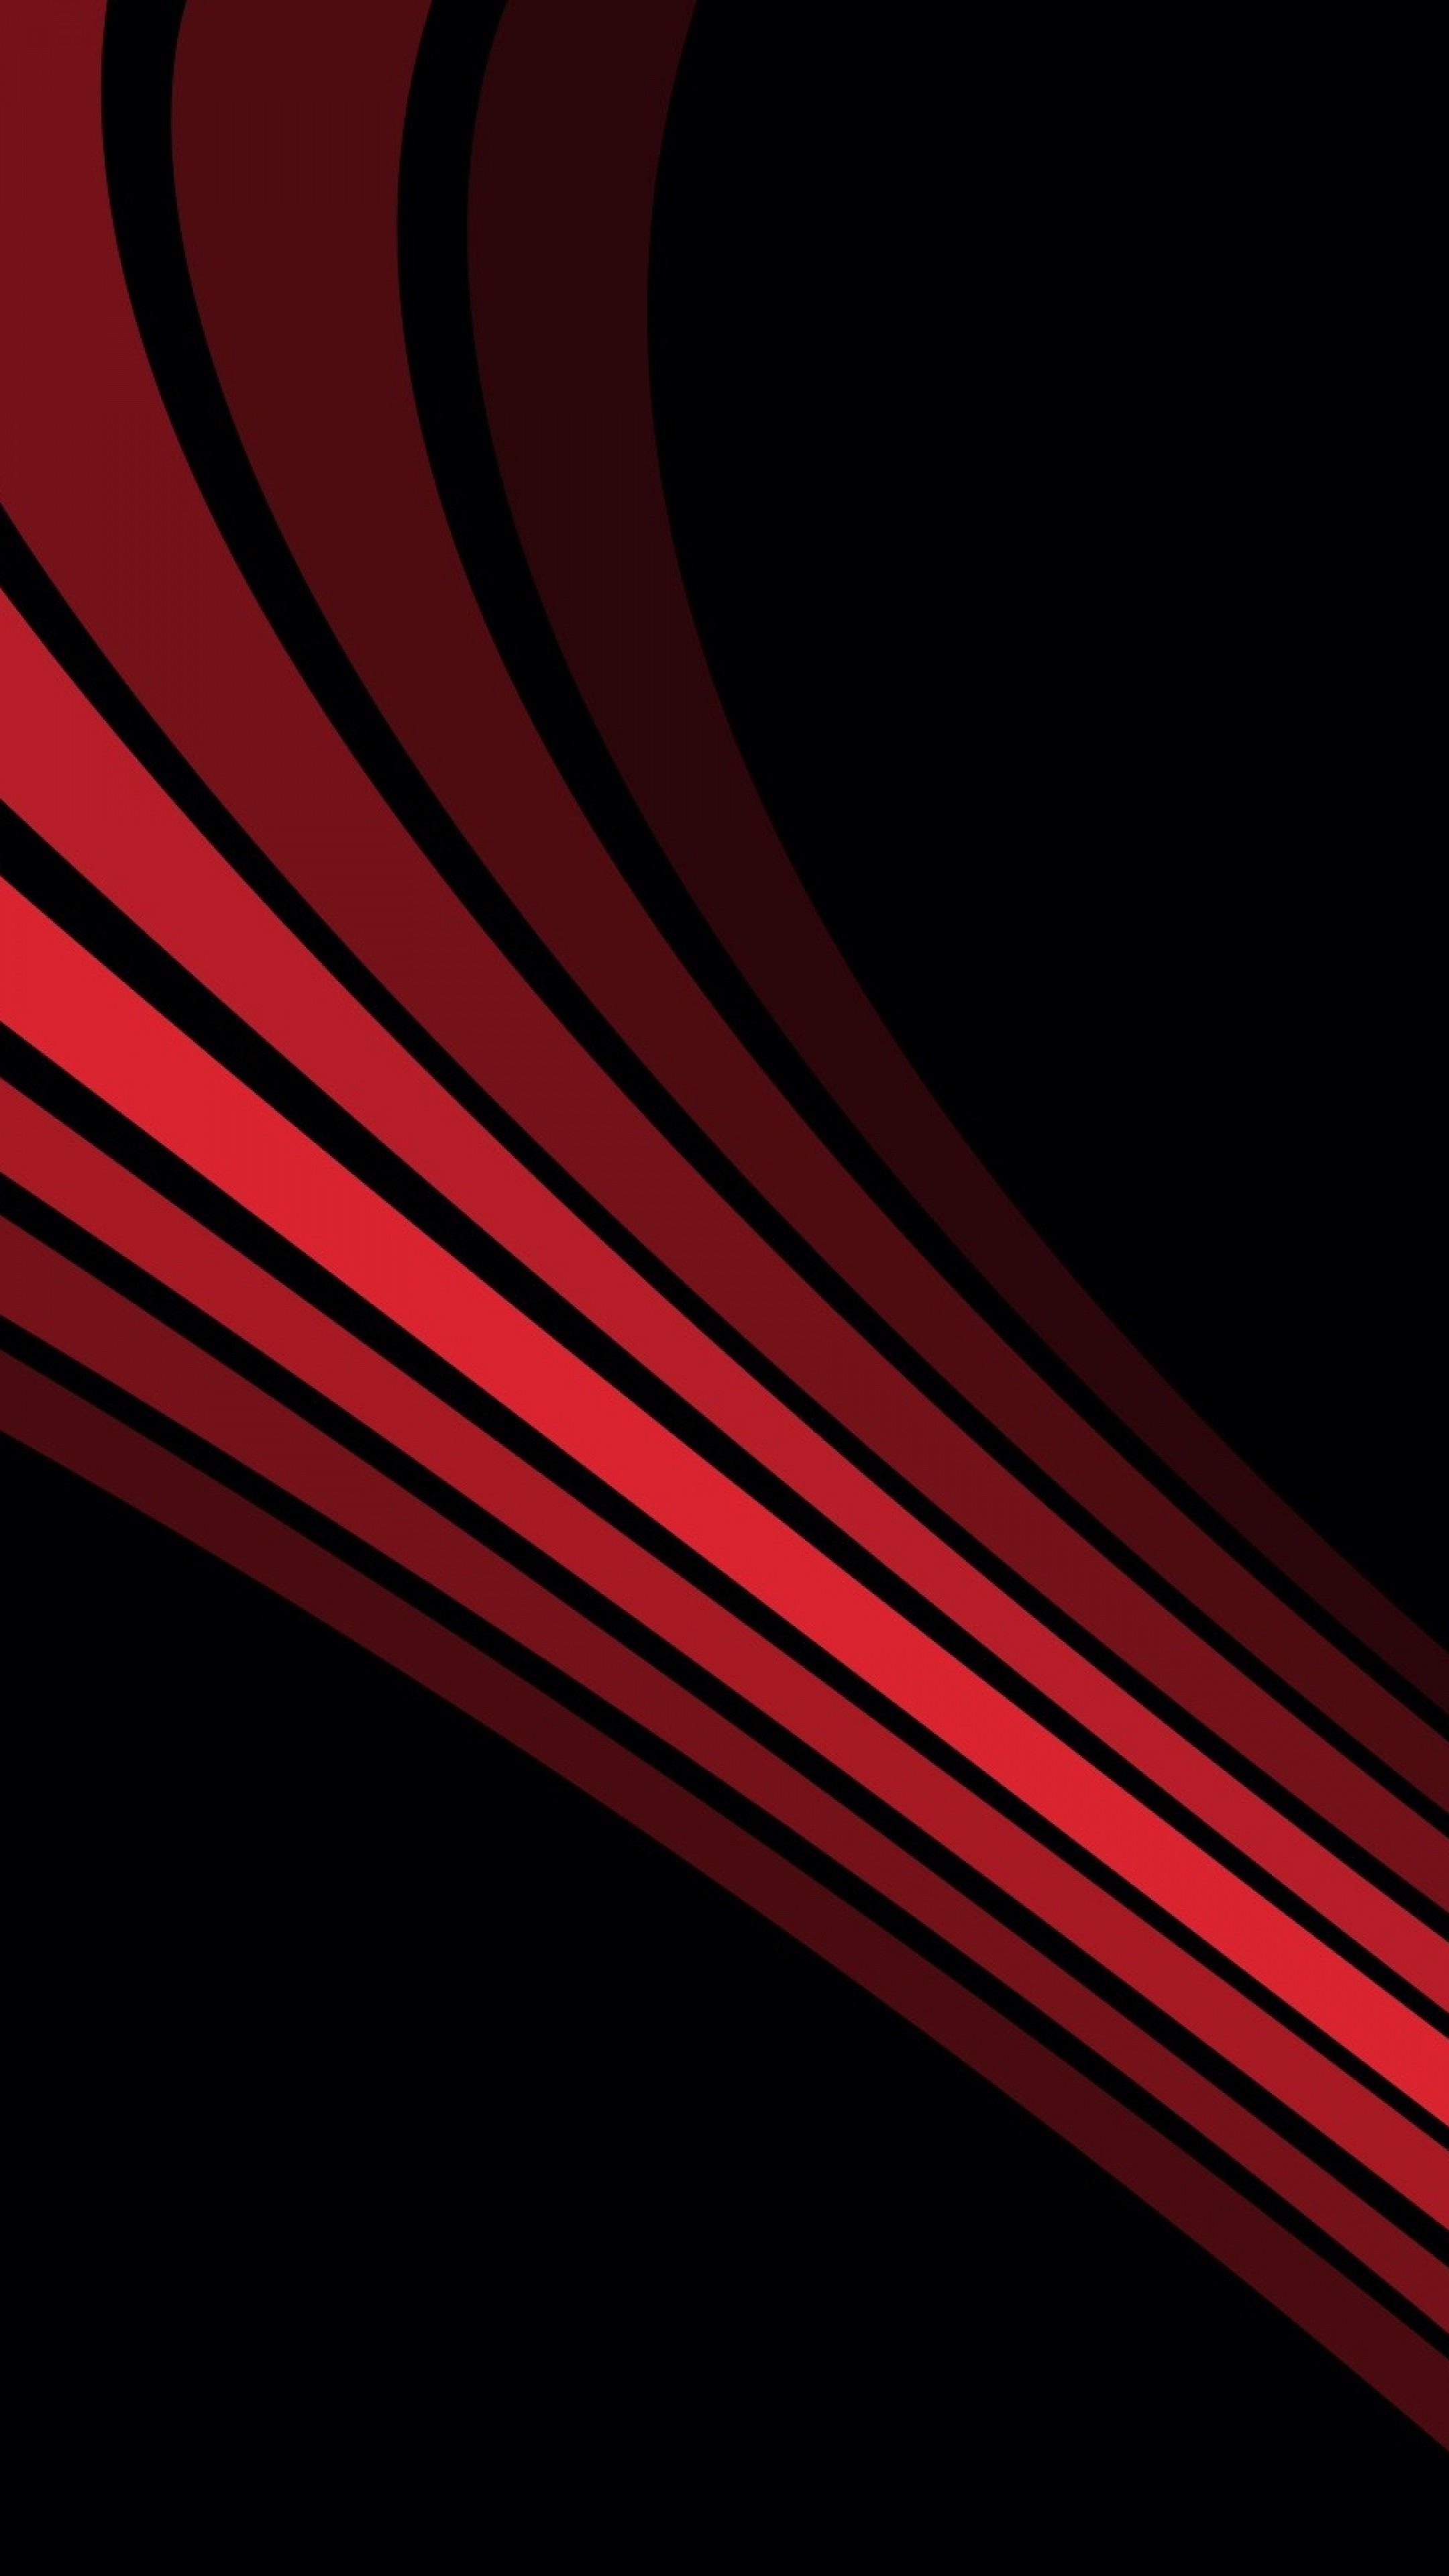 Black And Red 4k Wallpaper 54 Images